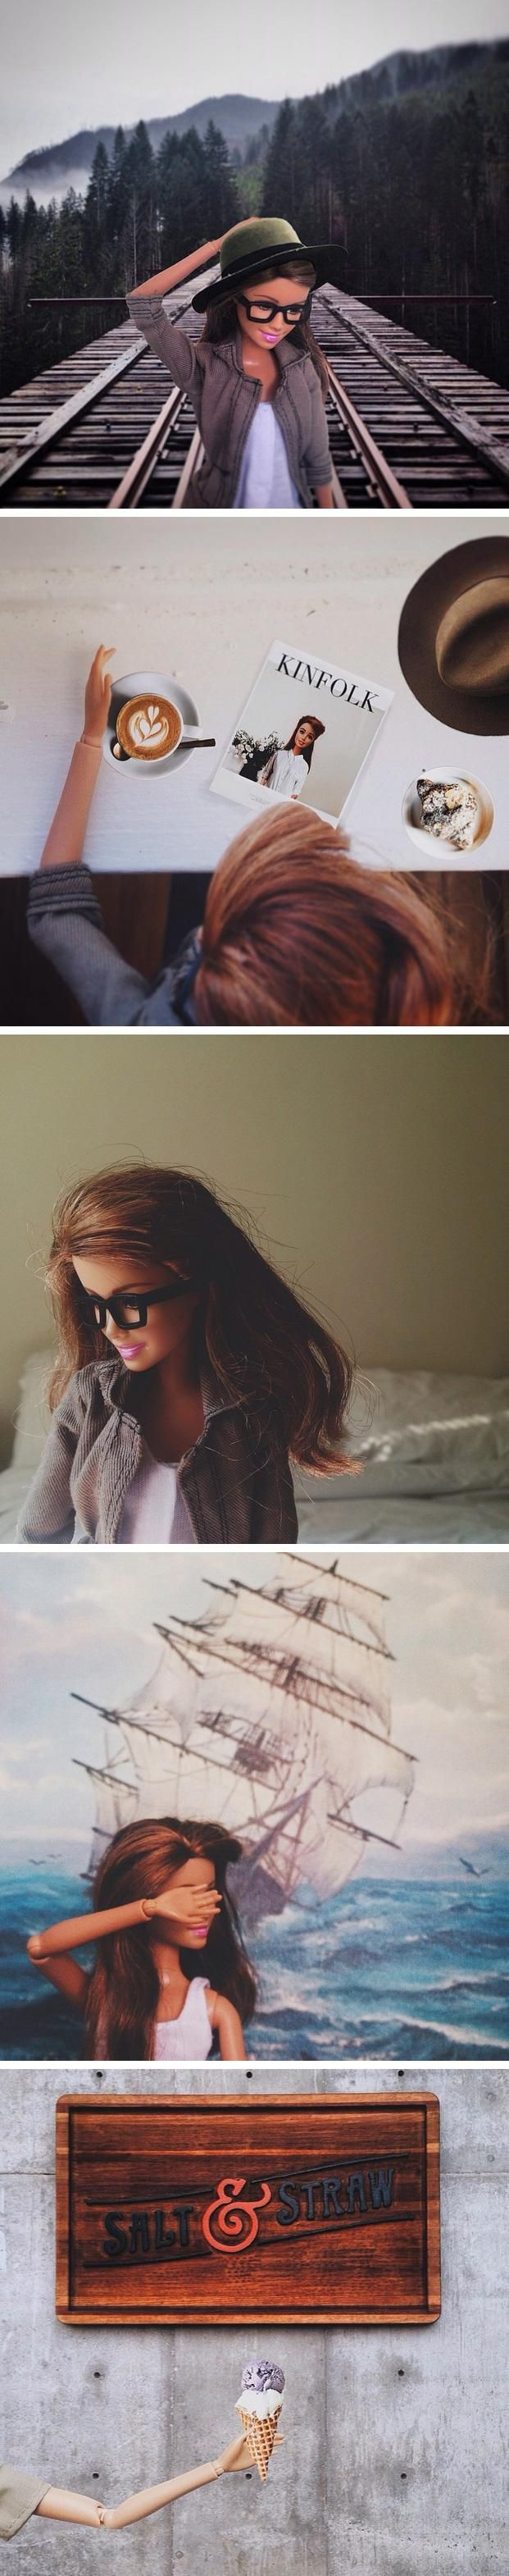 Socality Barbie imagines what it would look like if Barbie were a hipster